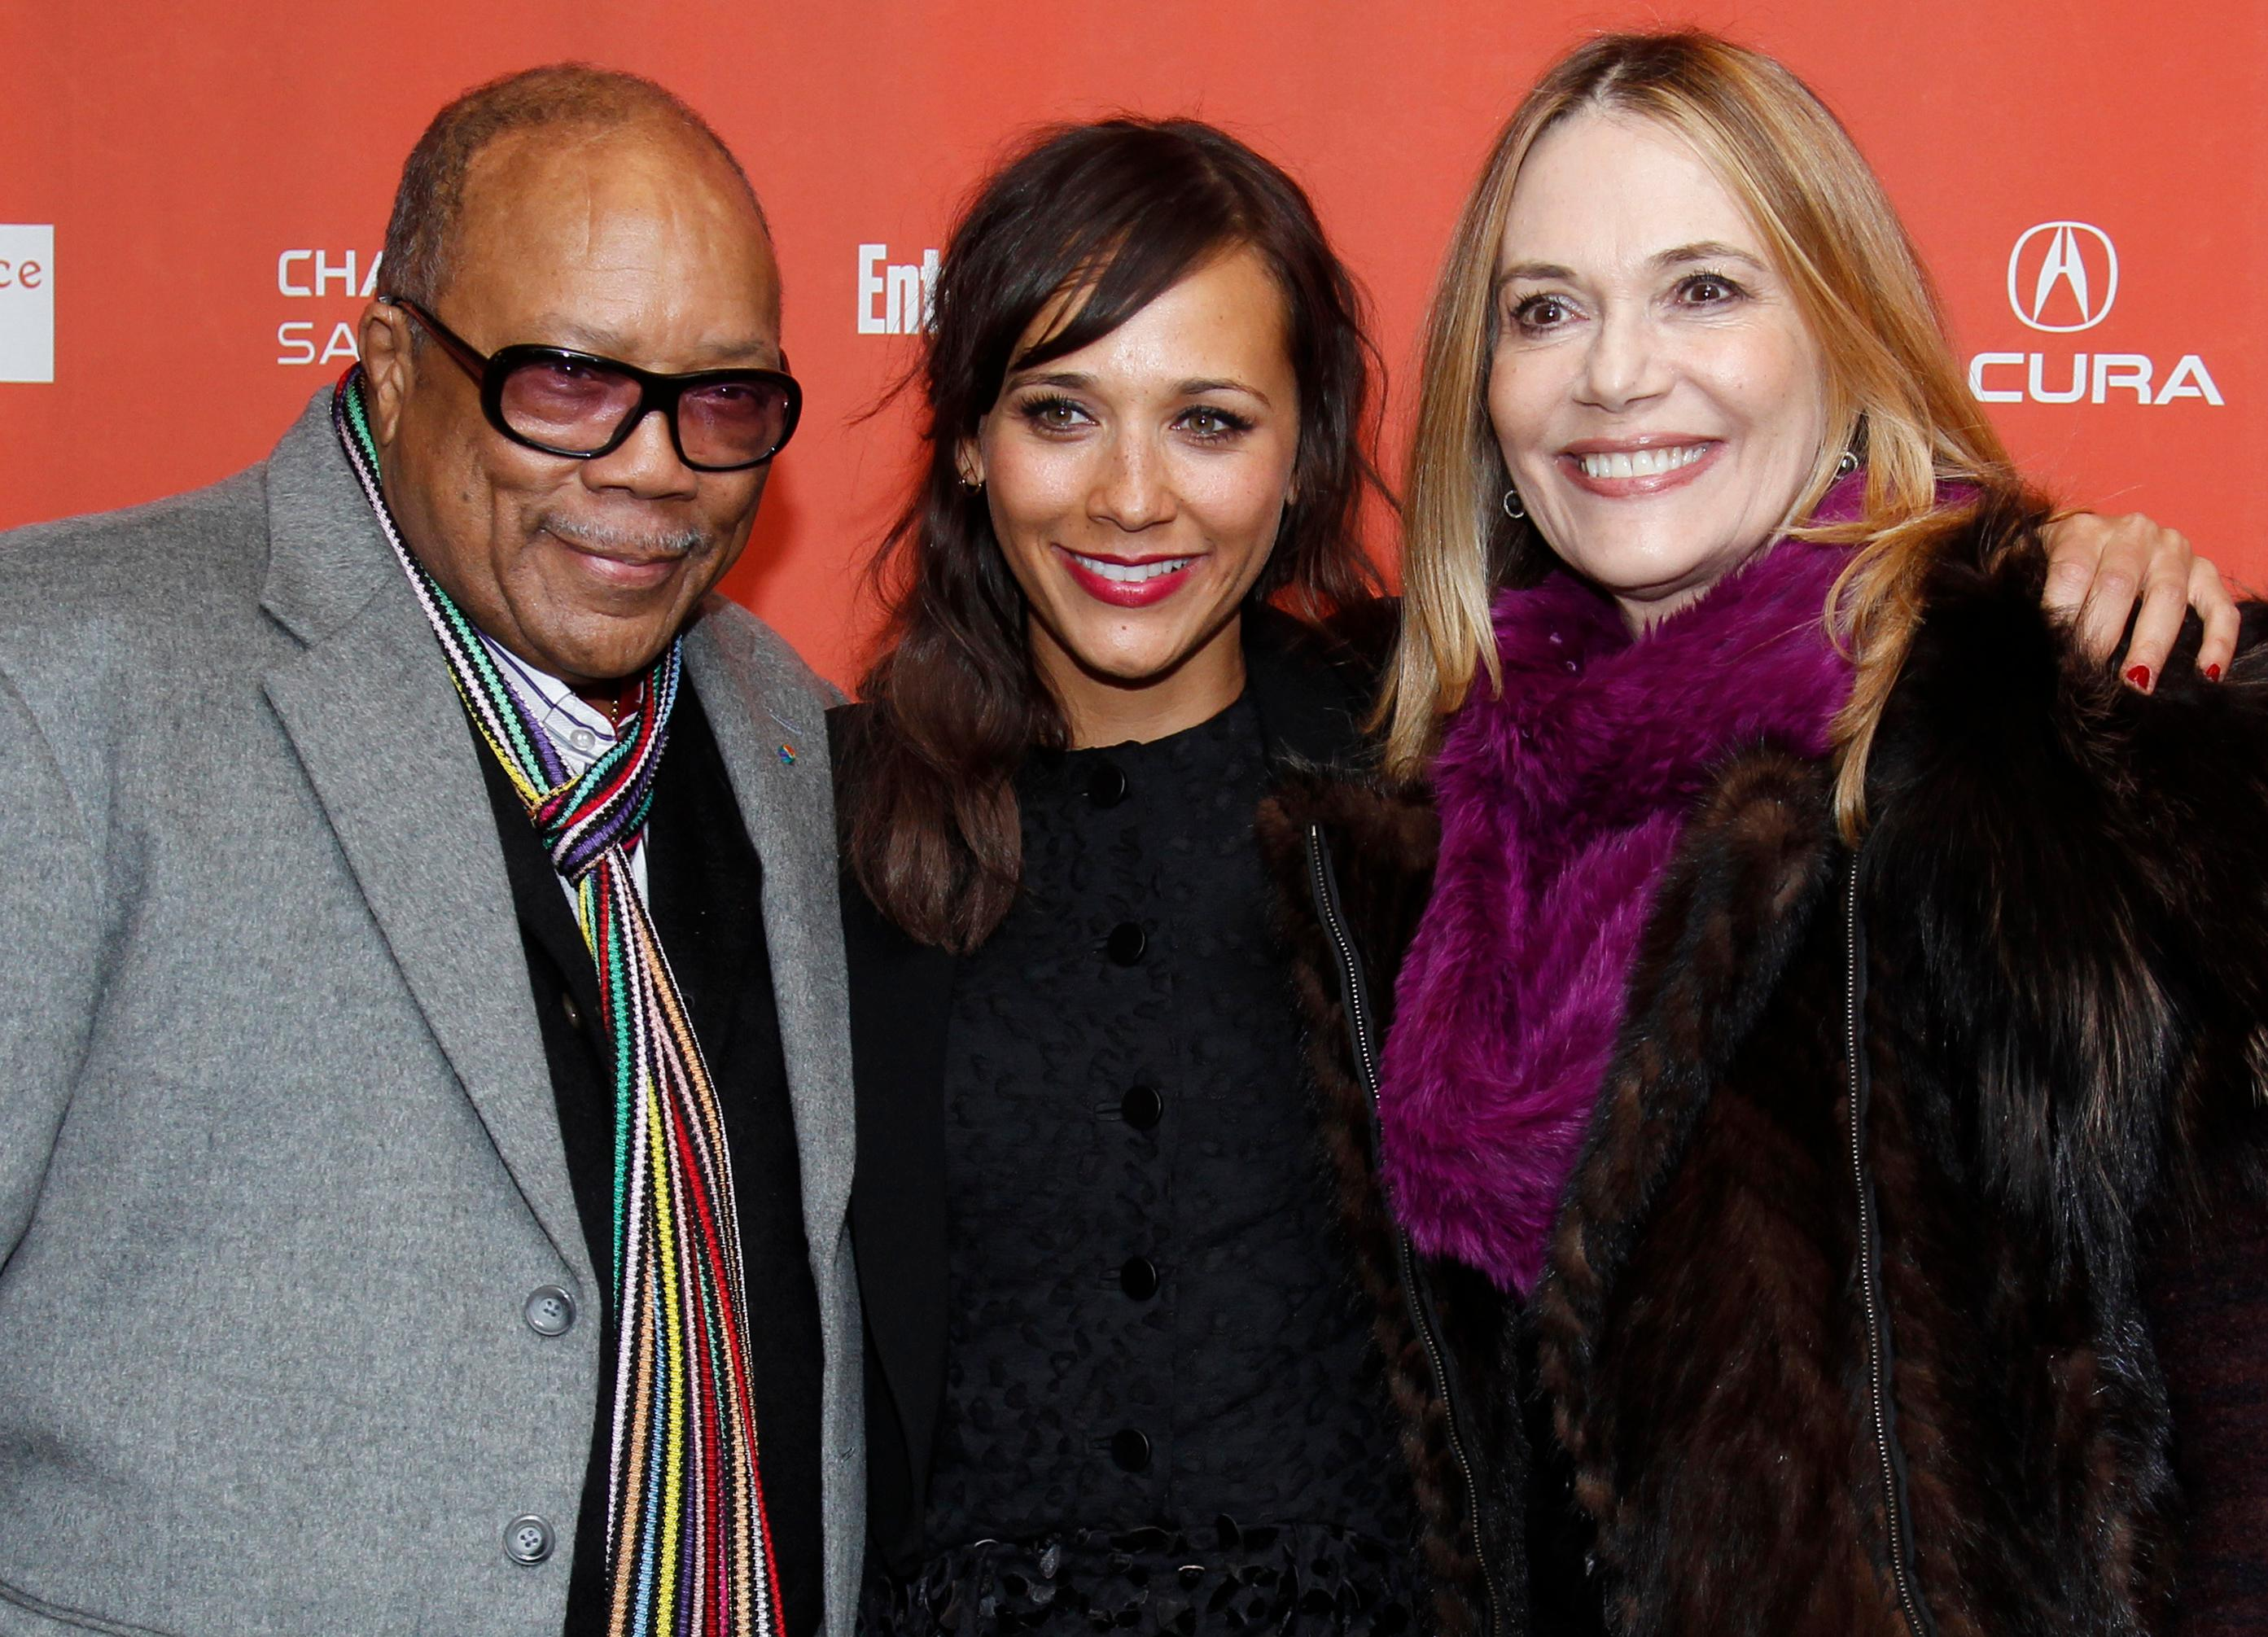 "FILE - In this Jan. 20, 2012 file photo, actress Rashida Jones, center, poses with her father Quincy Jones, left, and her mother Peggy Lipton, right, at the premiere of ""Celeste and Jesse Forever"" at the 2012 Sundance Film Festival in Park City, Utah. Lipton, a star of the groundbreaking late 1960s TV show ""The Mod Squad"" and the 1990s show ""Twin Peaks,"" has died of cancer at age 72. Lipton's daughters Rashida and Kidada Jones say in a statement that Lipton died Saturday, May 11, 2019, surrounded by her family. (AP Photo/Danny Moloshok, File)"